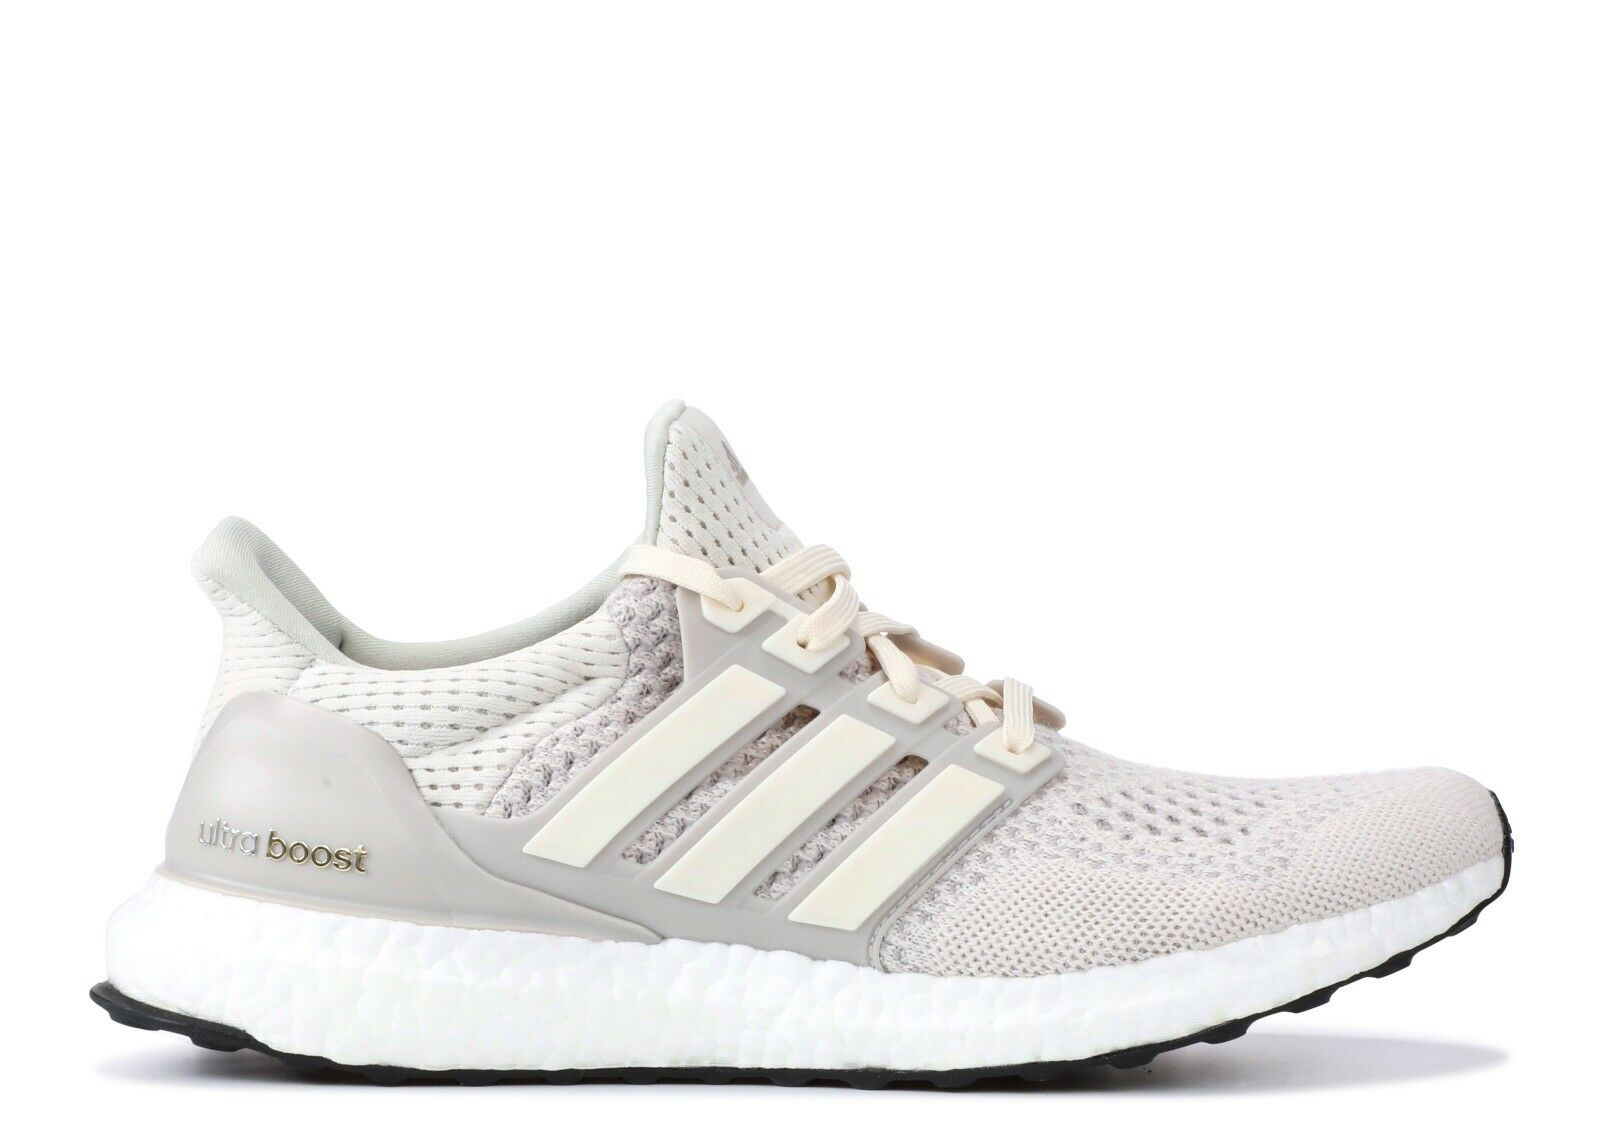 adidas Ultra Boost 1.0 Ltd 'Multicolor' (RainbowWhite)